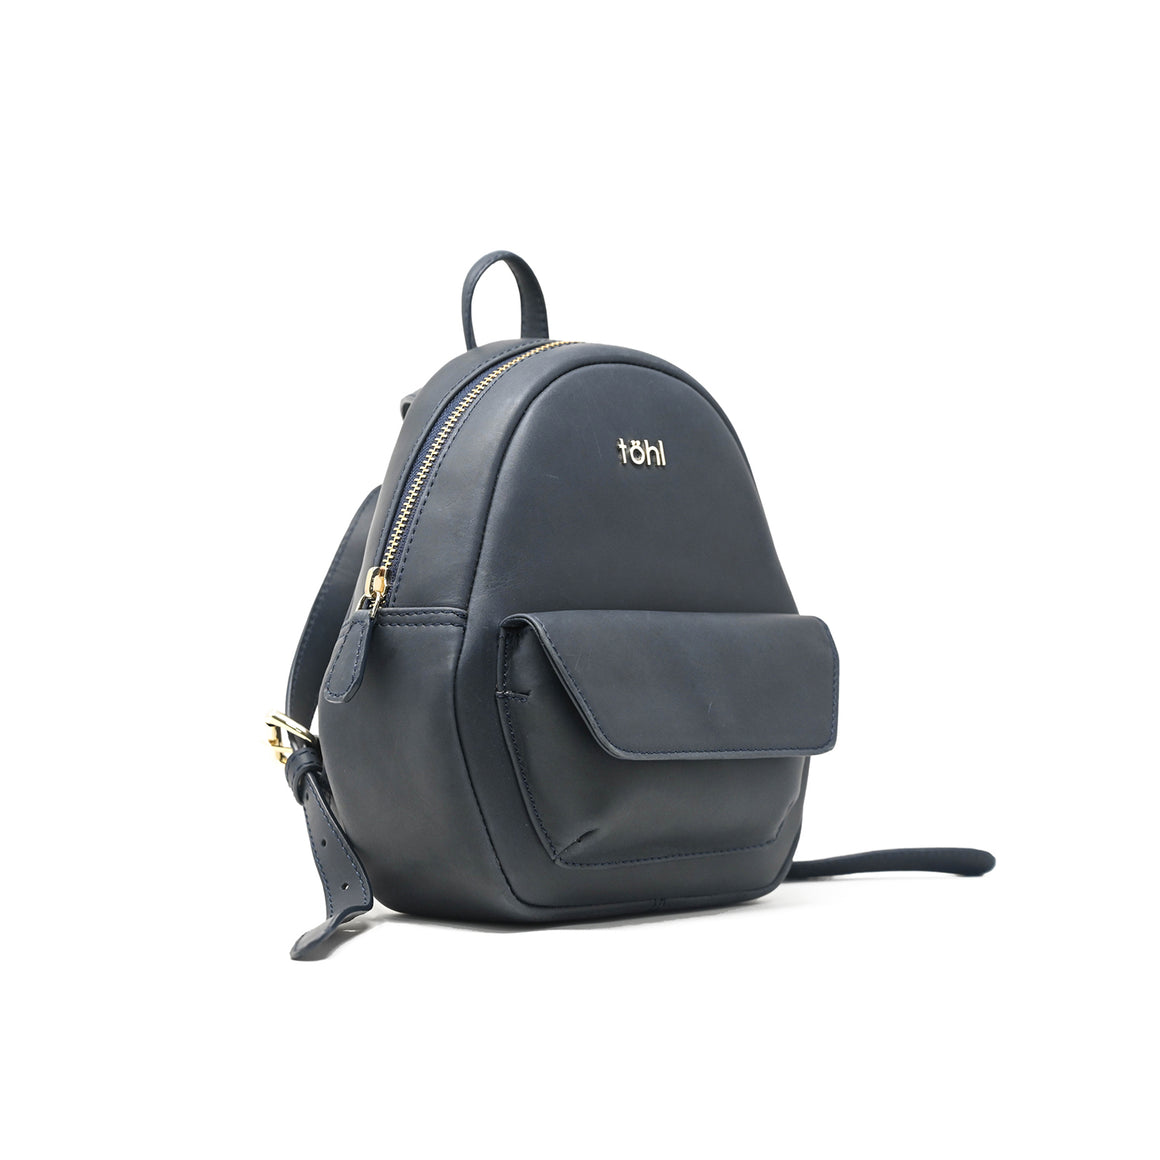 BP0018 - TOHL DEVON WOMEN'S BACKPACK - NAVY